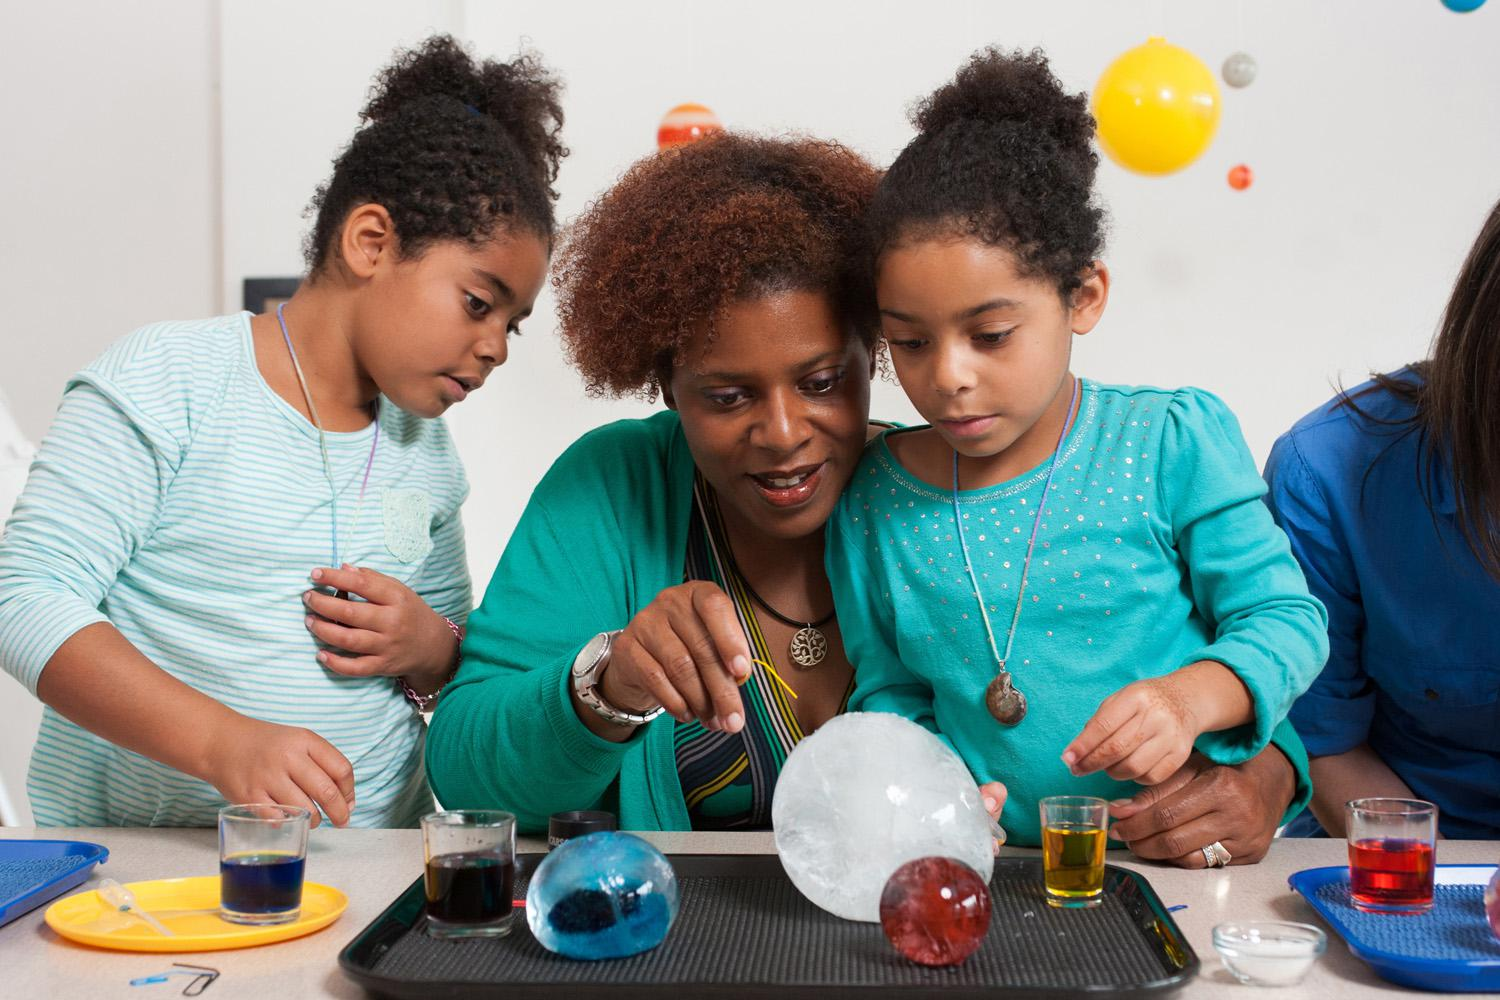 A Family Making Discoveries Through An Experiment